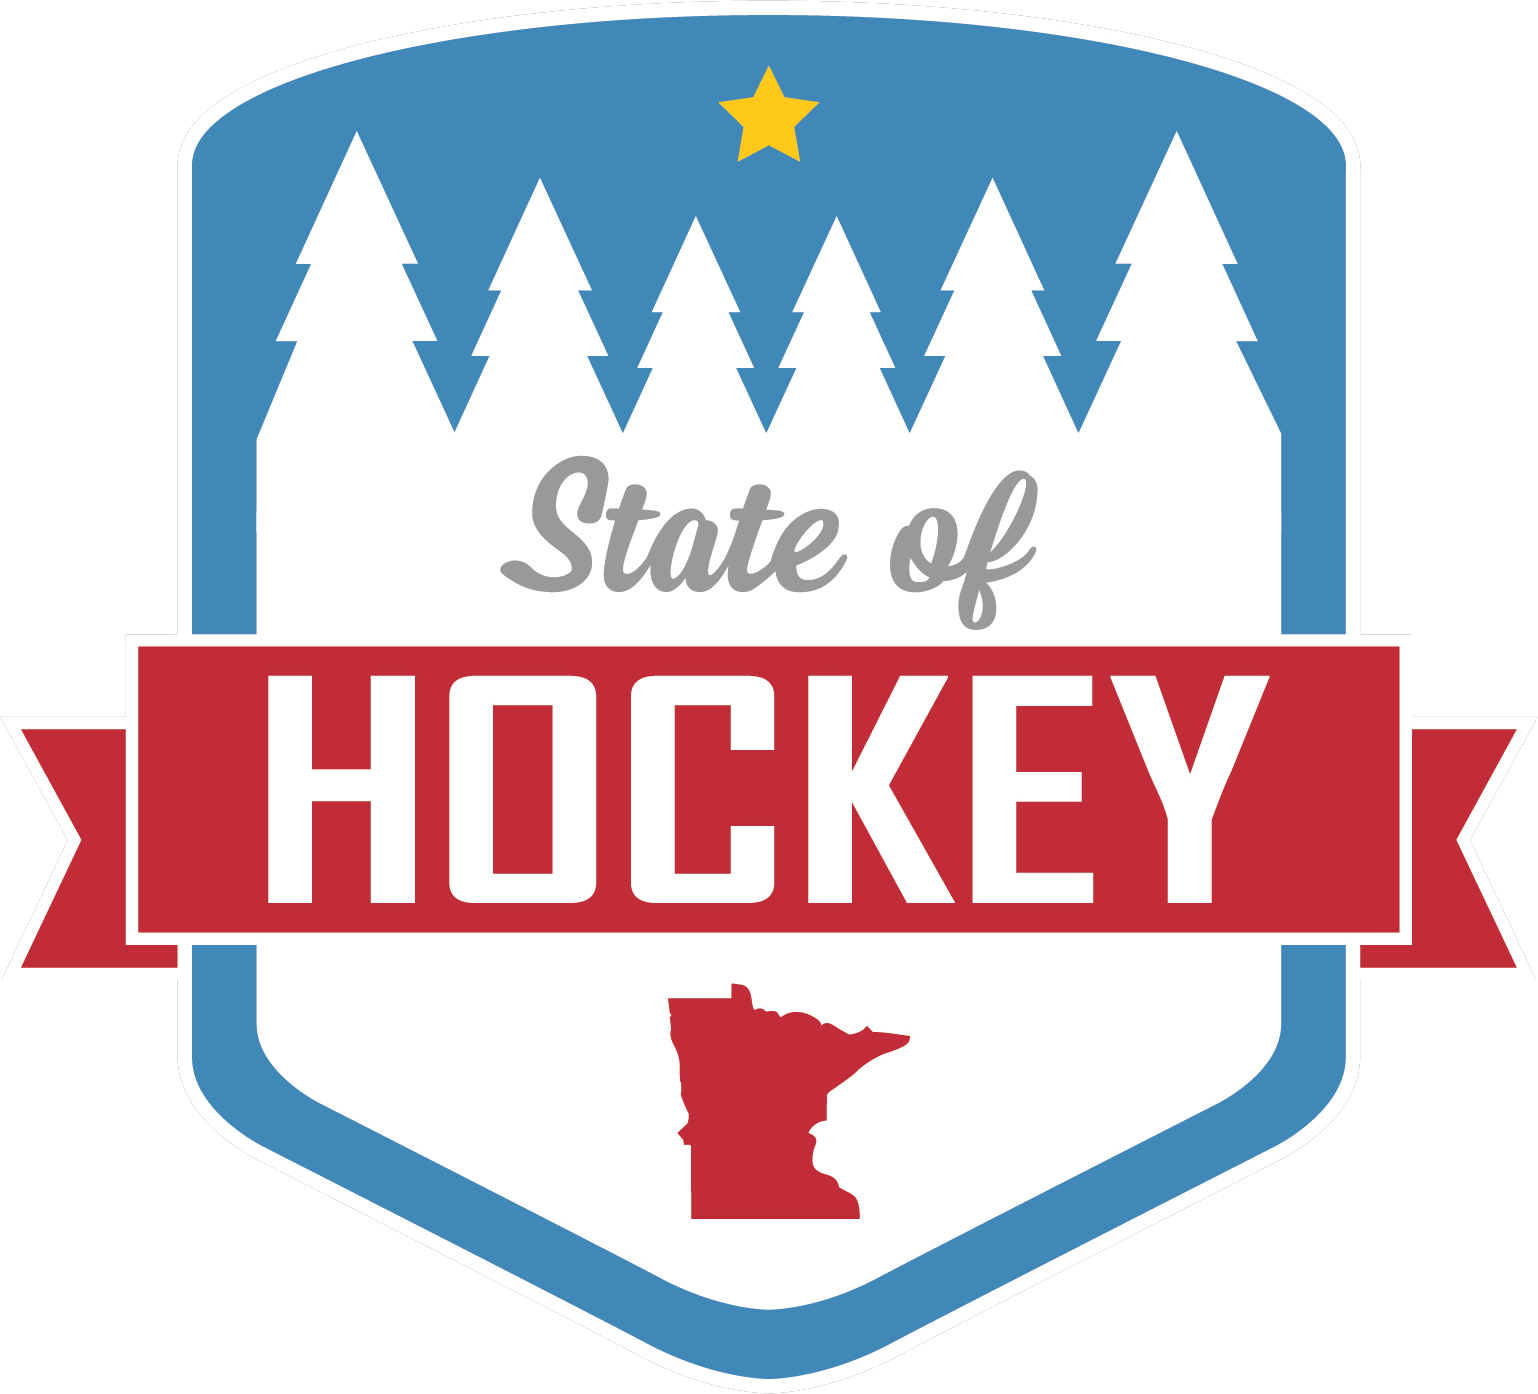 Hockey Resume Website State By State How Much Is 100 Worth State By State